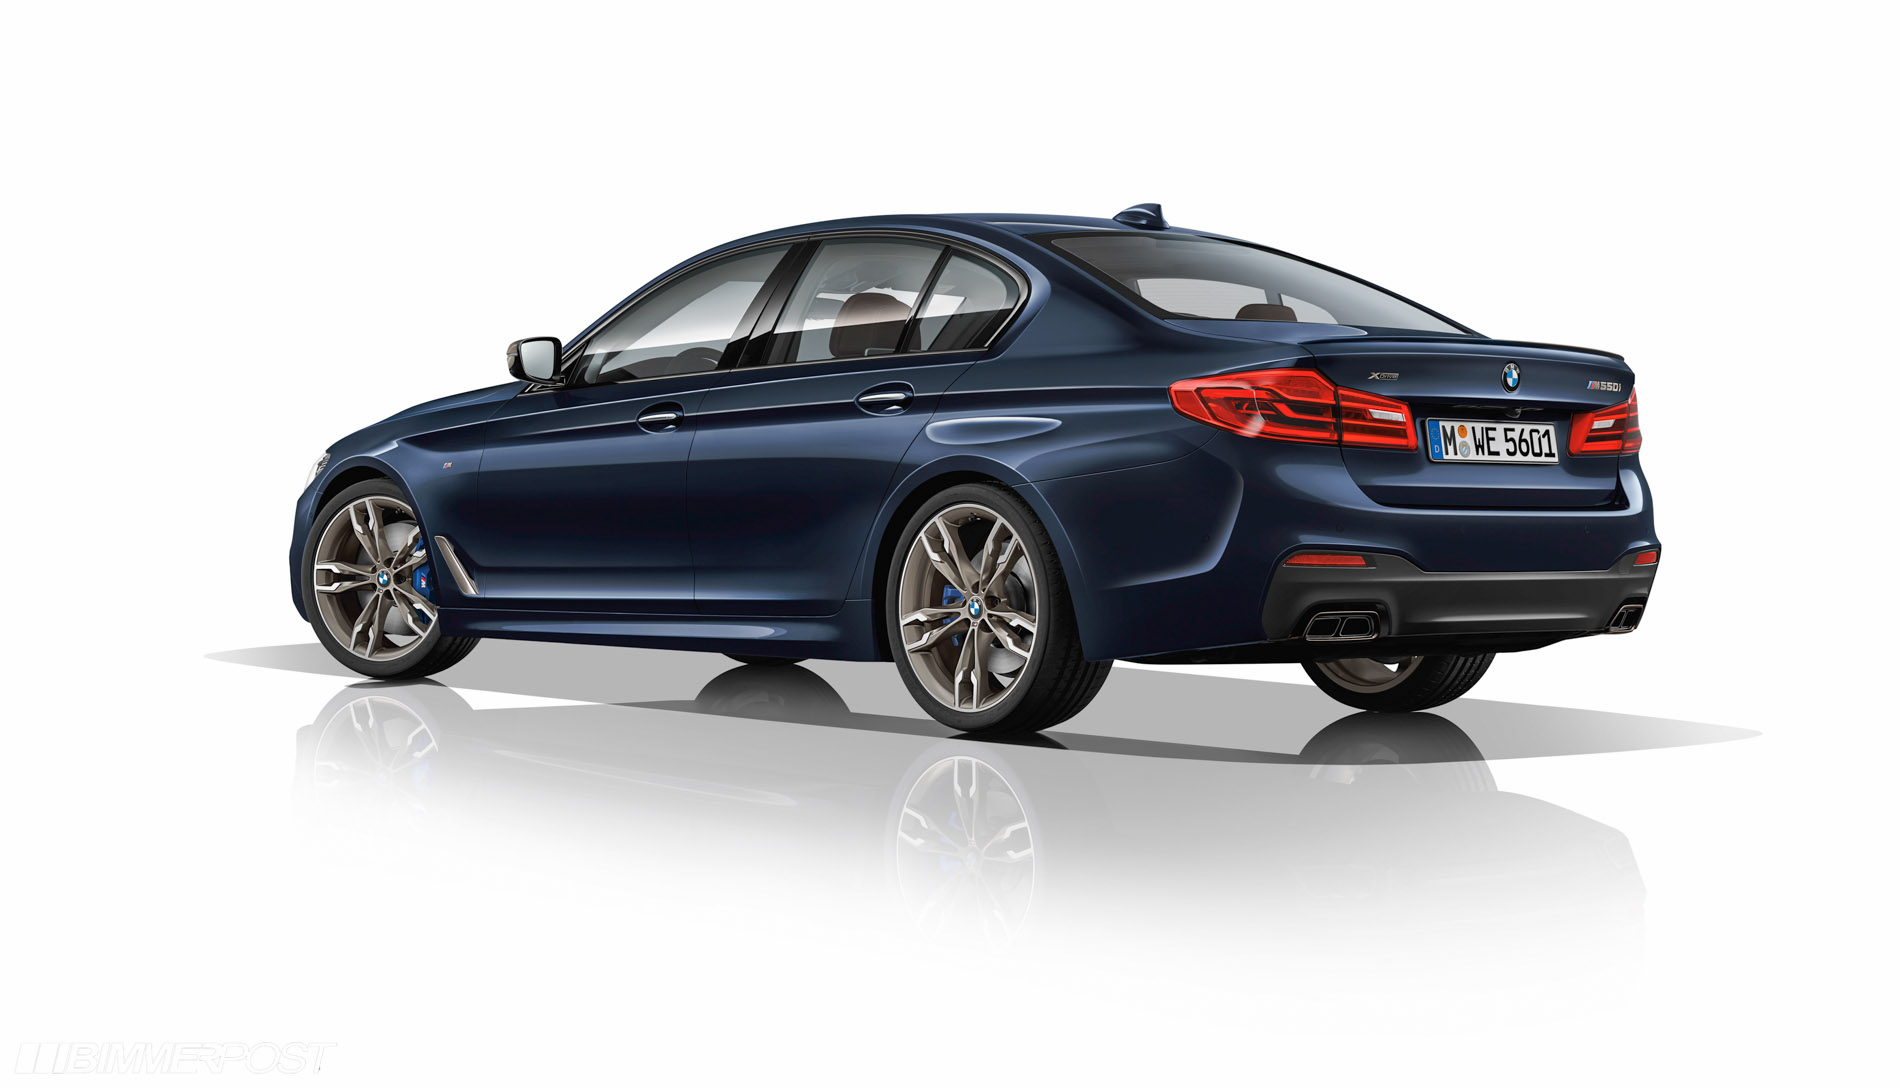 official bmw 5 series sedan g30 wallpapers specs press release page 4. Black Bedroom Furniture Sets. Home Design Ideas